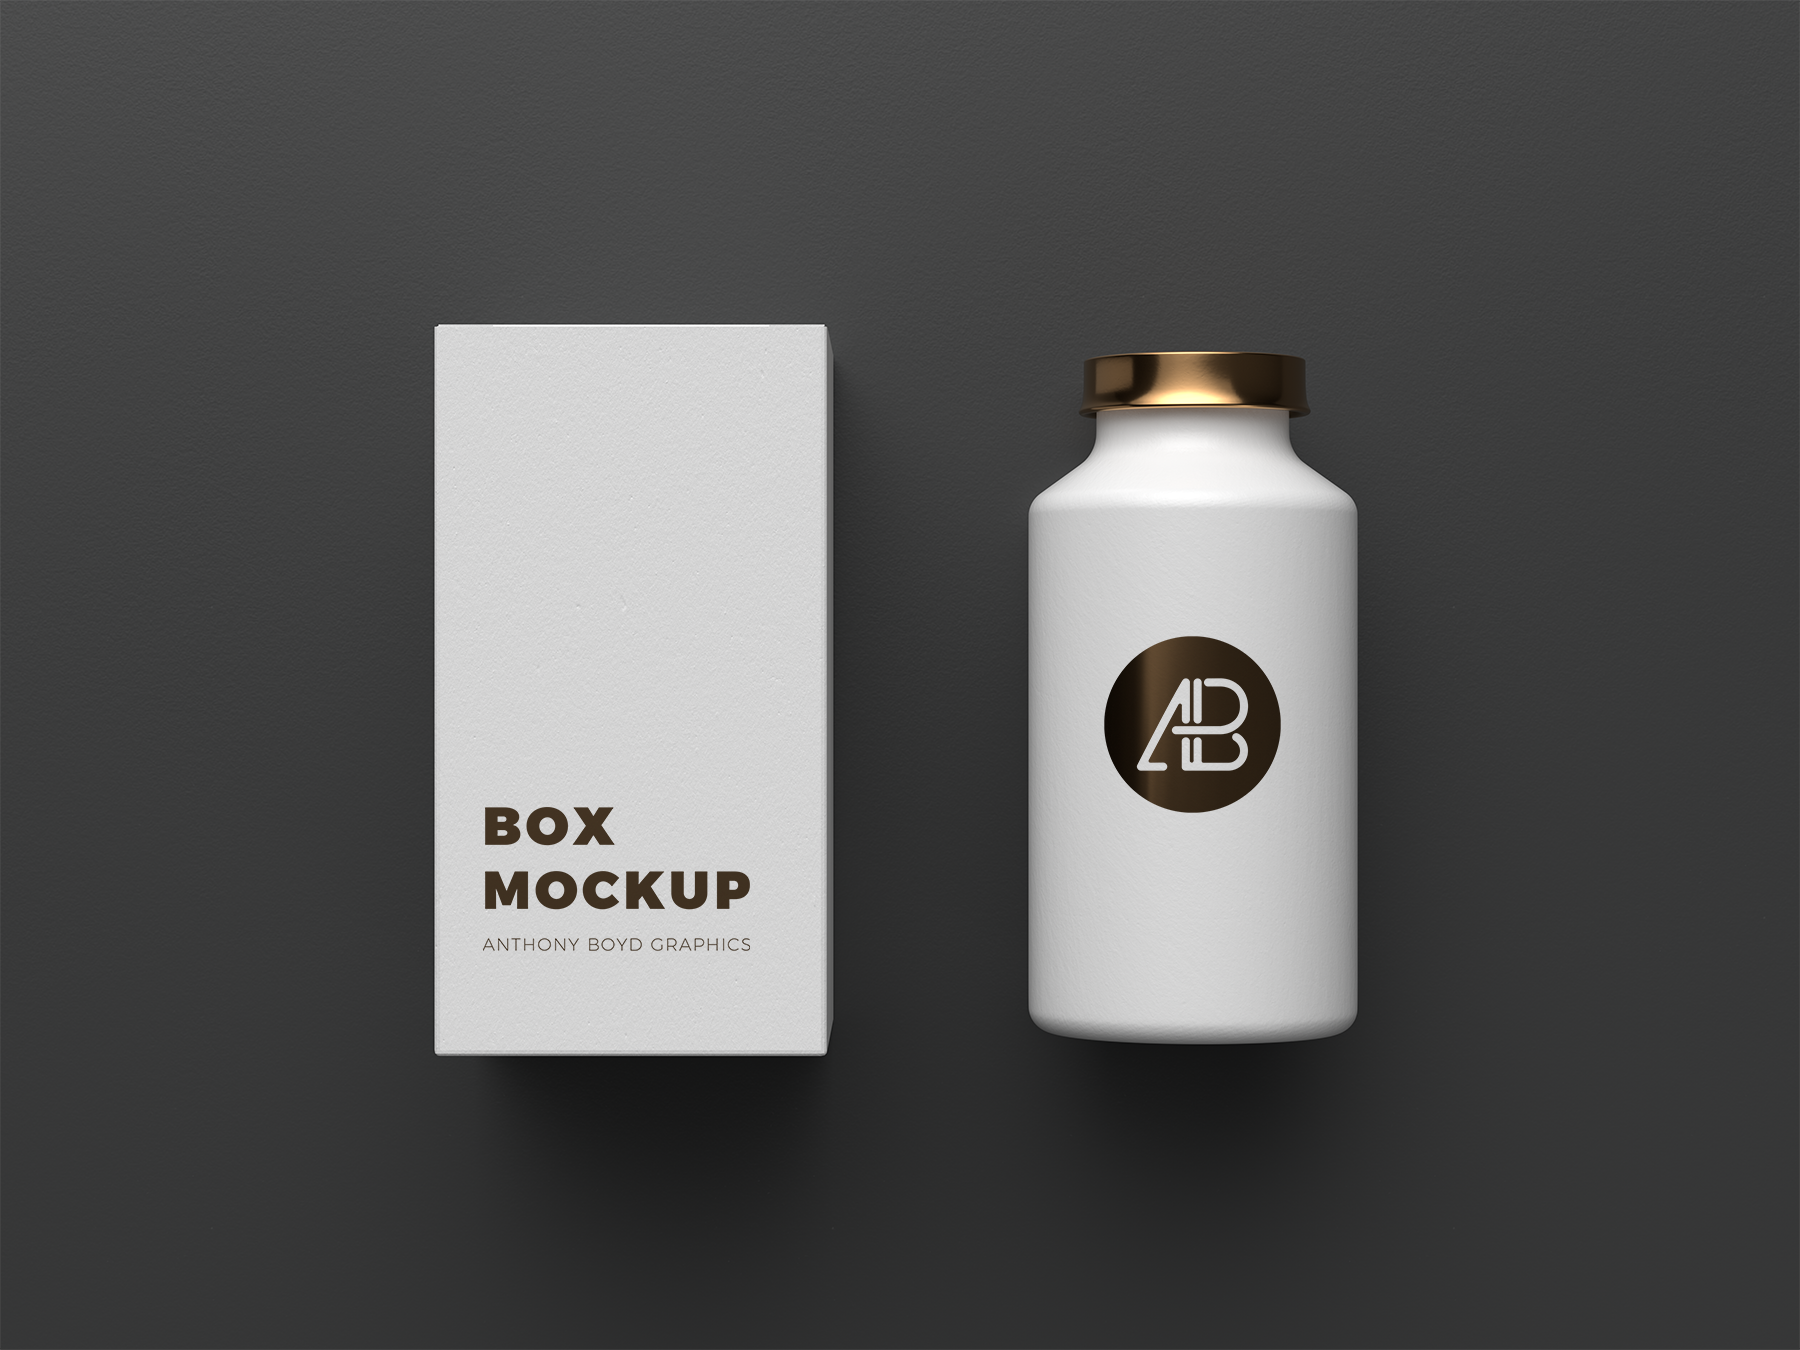 Free Cosmetics Bottle with Box Mockup